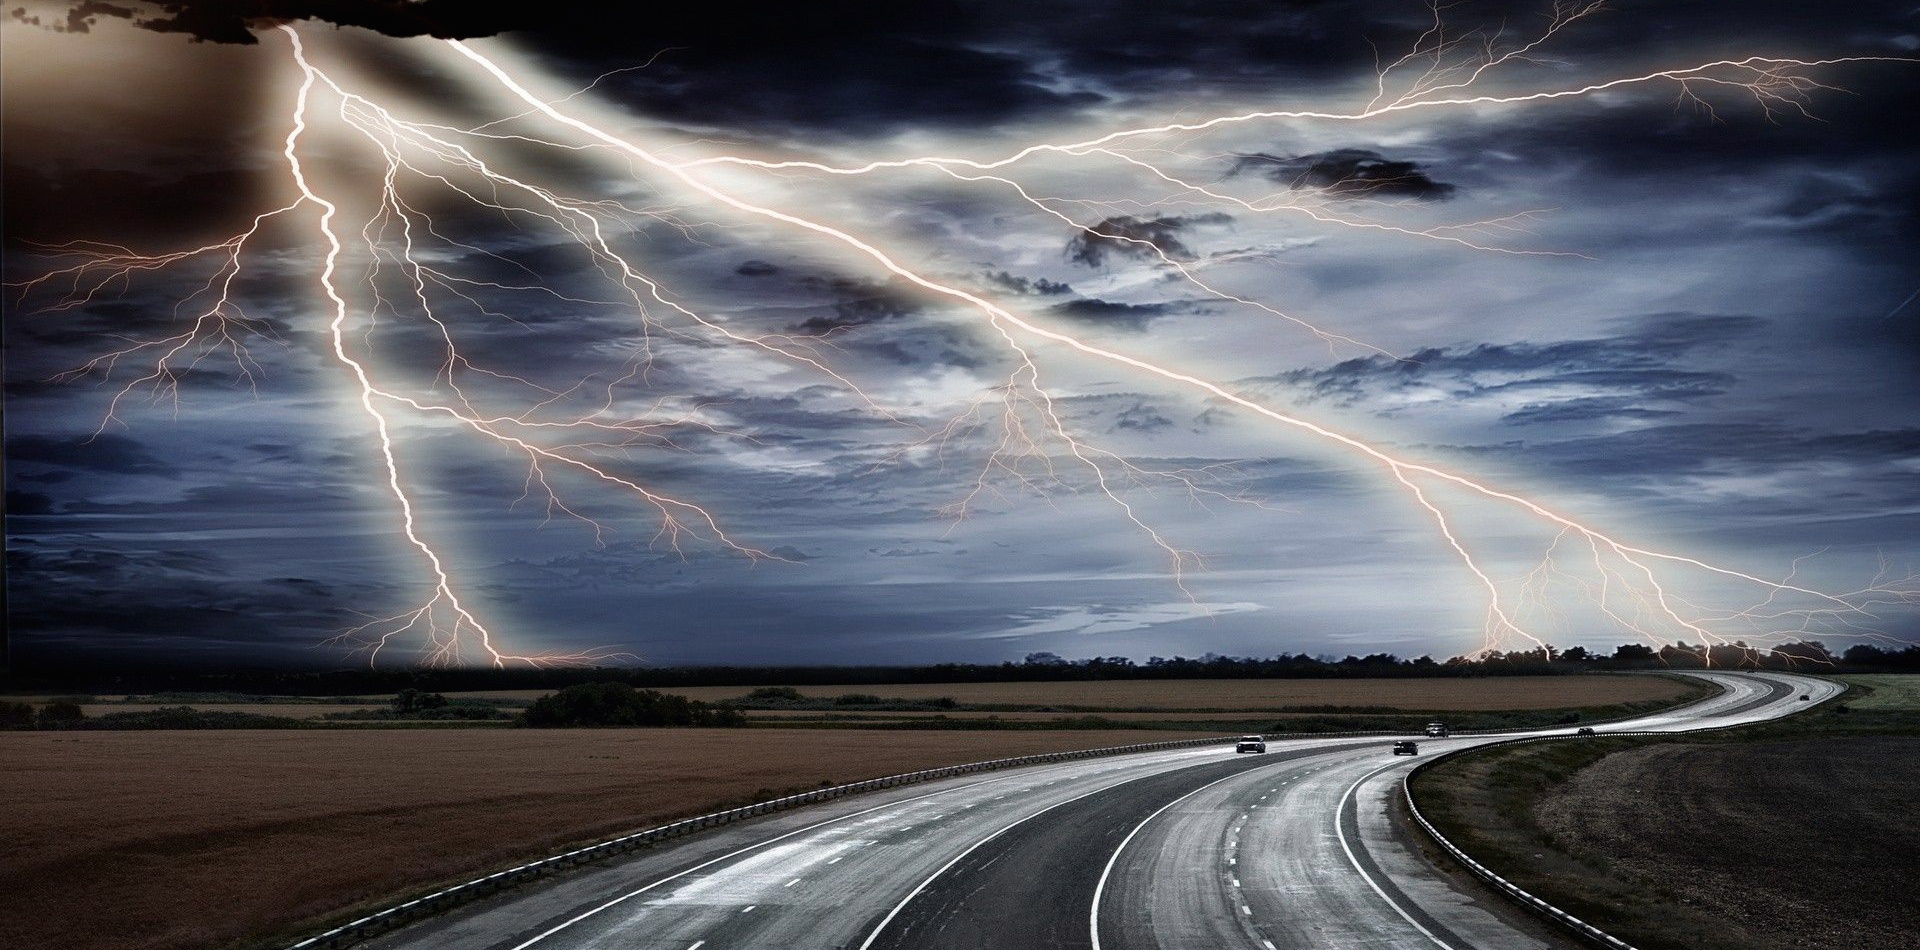 lightning-bolt-road-vehicle-dark-clouds-natural-free-wallpapers_lightning-bolt-road-vehicle-dark-clouds-natural-1